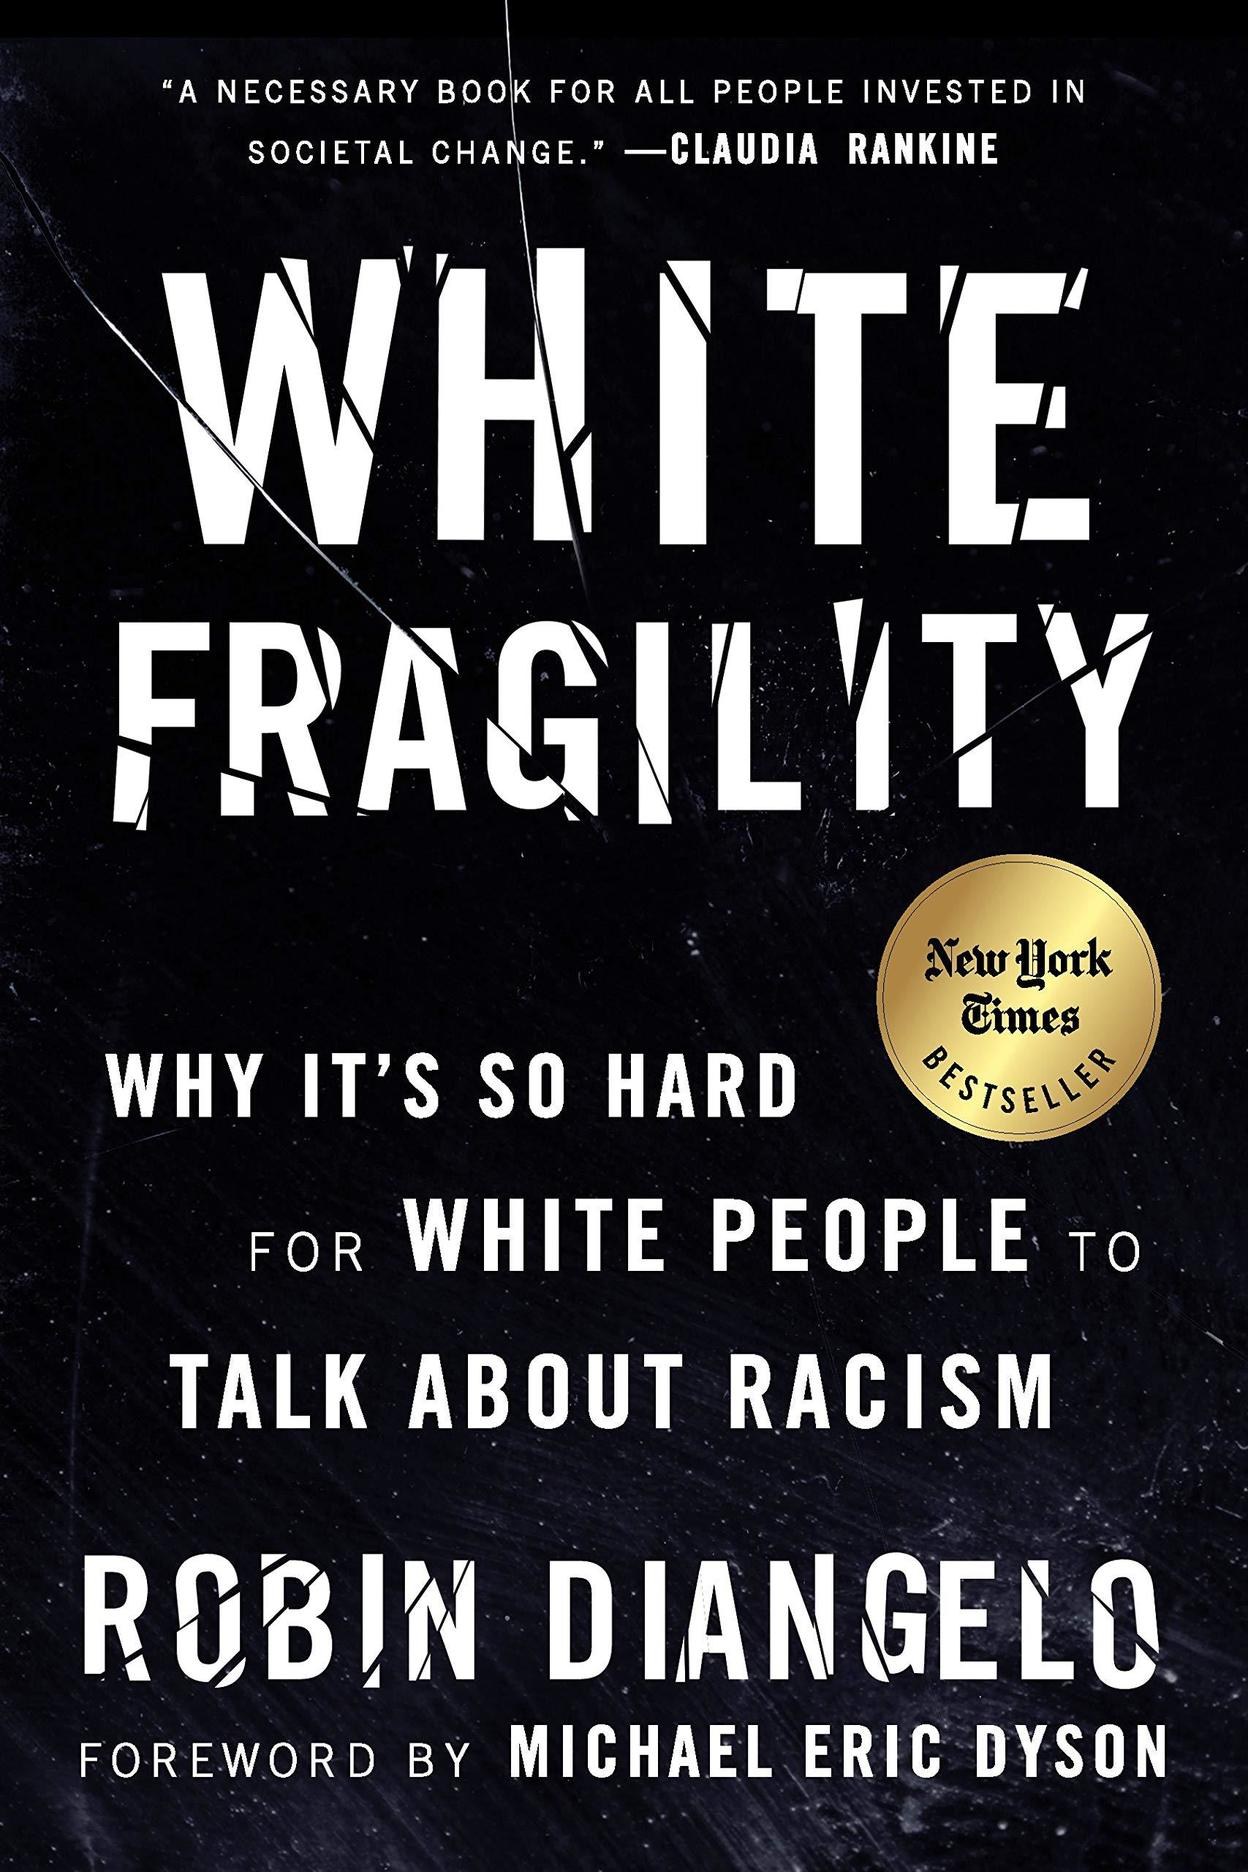 White_Fragility_--_Why_Its_So_Hard_for_White_People_to_Talk_About_Racism_Cover.jpg